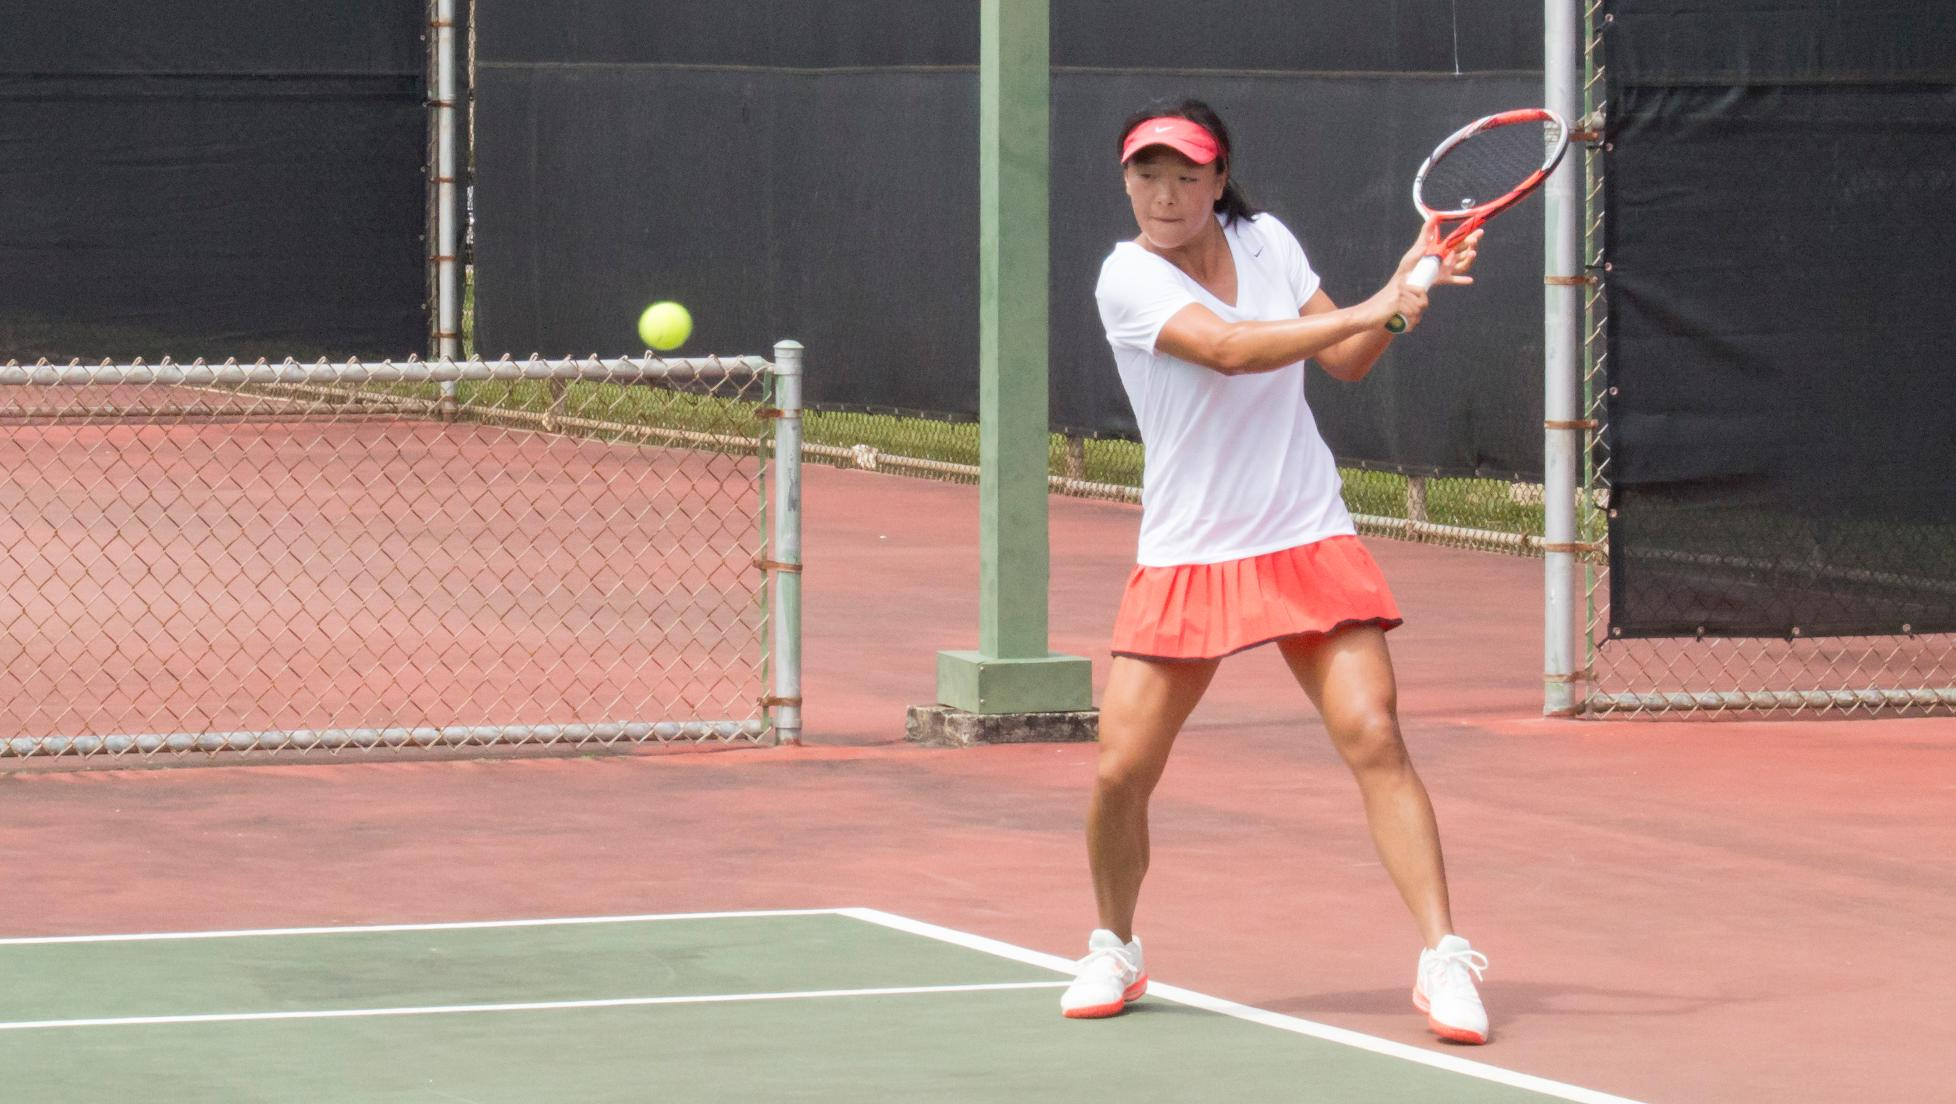 Zhang competes in Hawaii Open